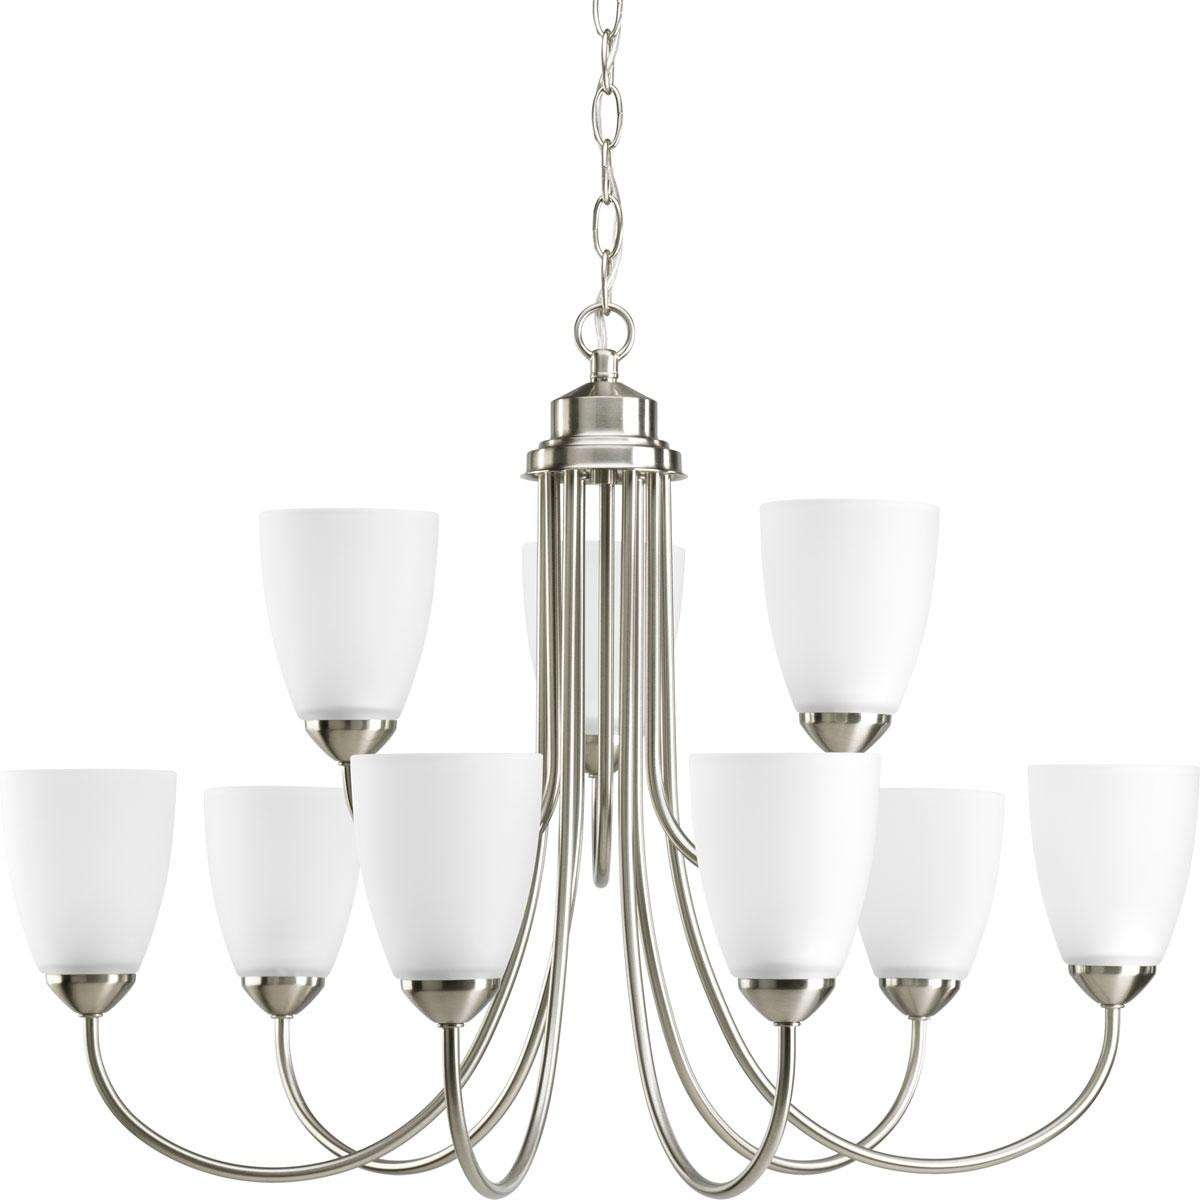 Progress P4627-09 Nine-light Chandelier in Brushed Nickel finish with etched glass.